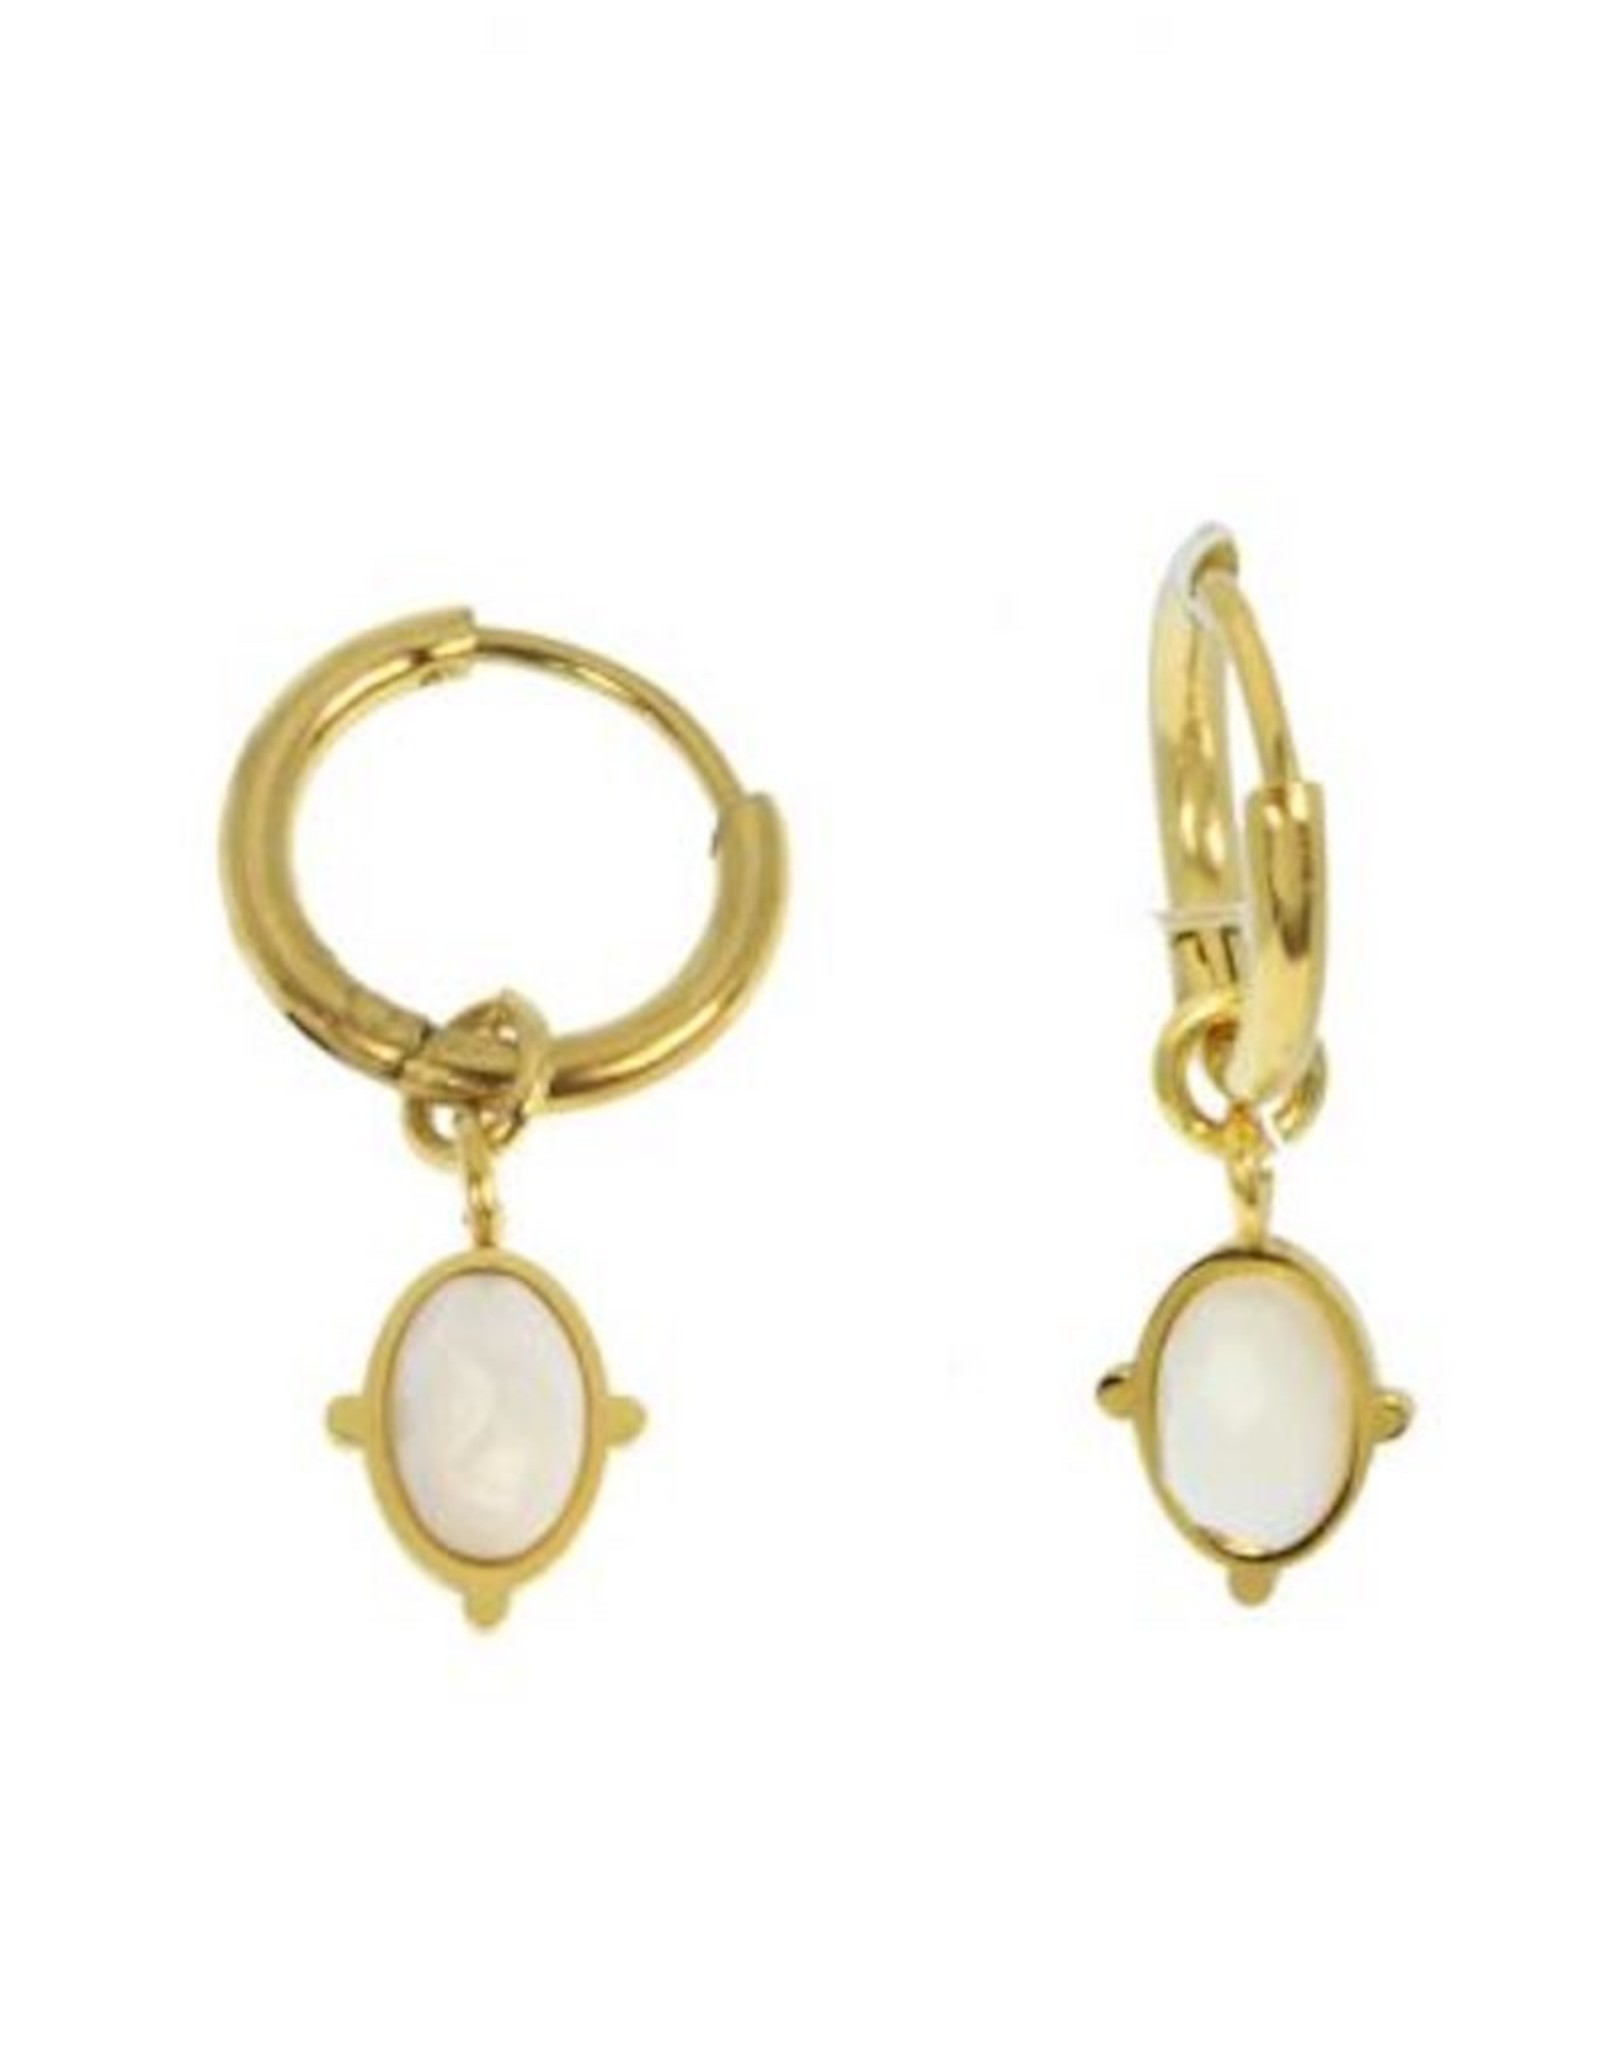 Izmir Earrings